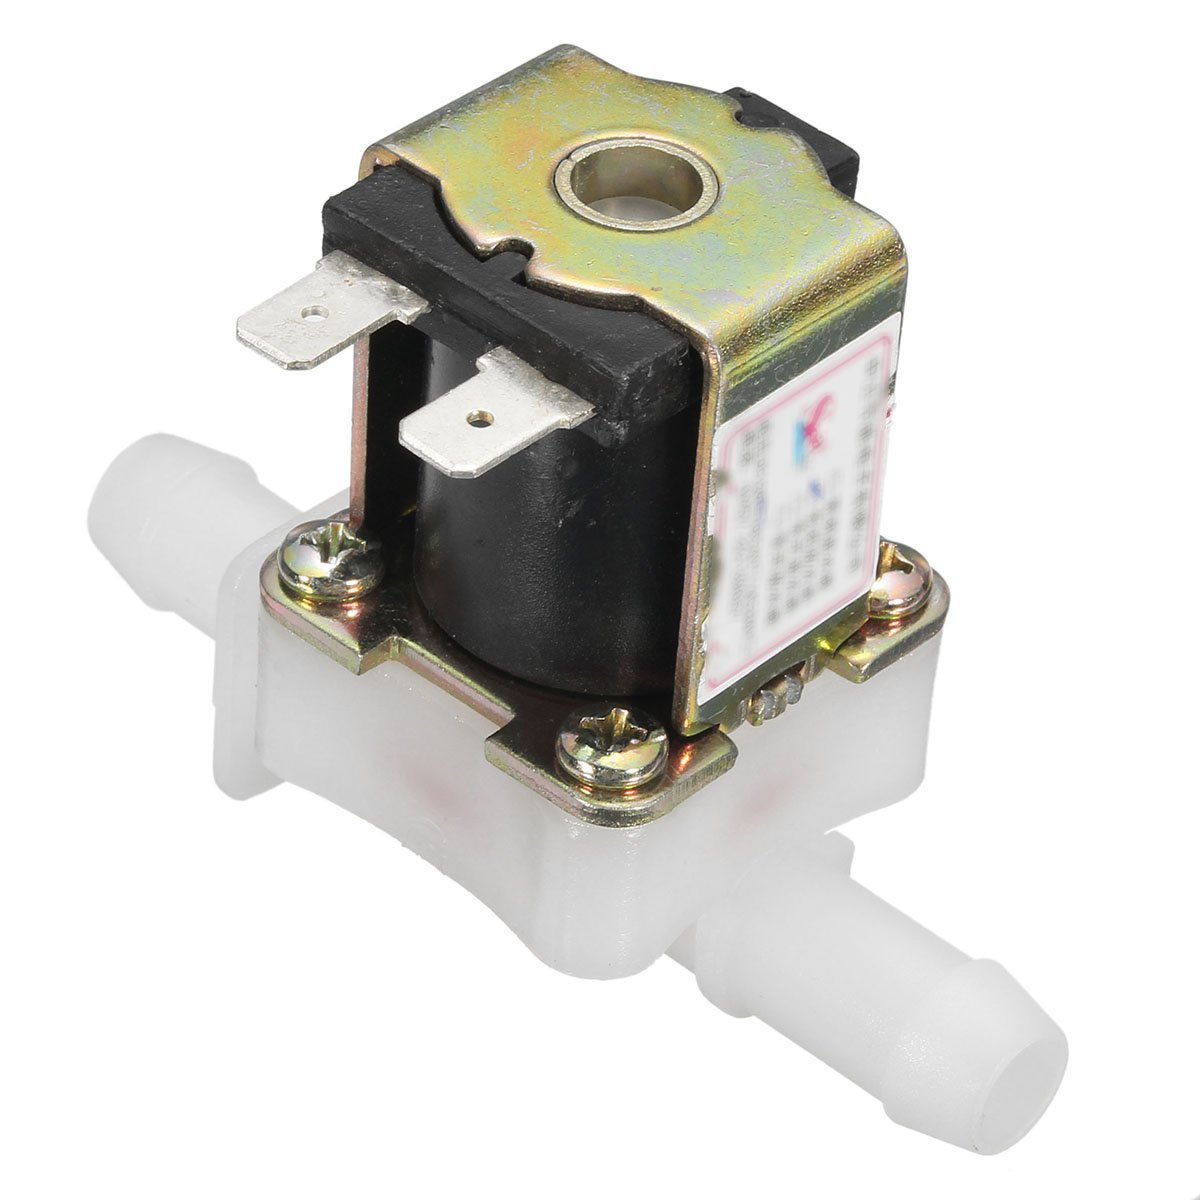 DyNamic 12V DC Electric Solenoid Valve Water Air Inlet Flow Switch Normally Closed 12mm